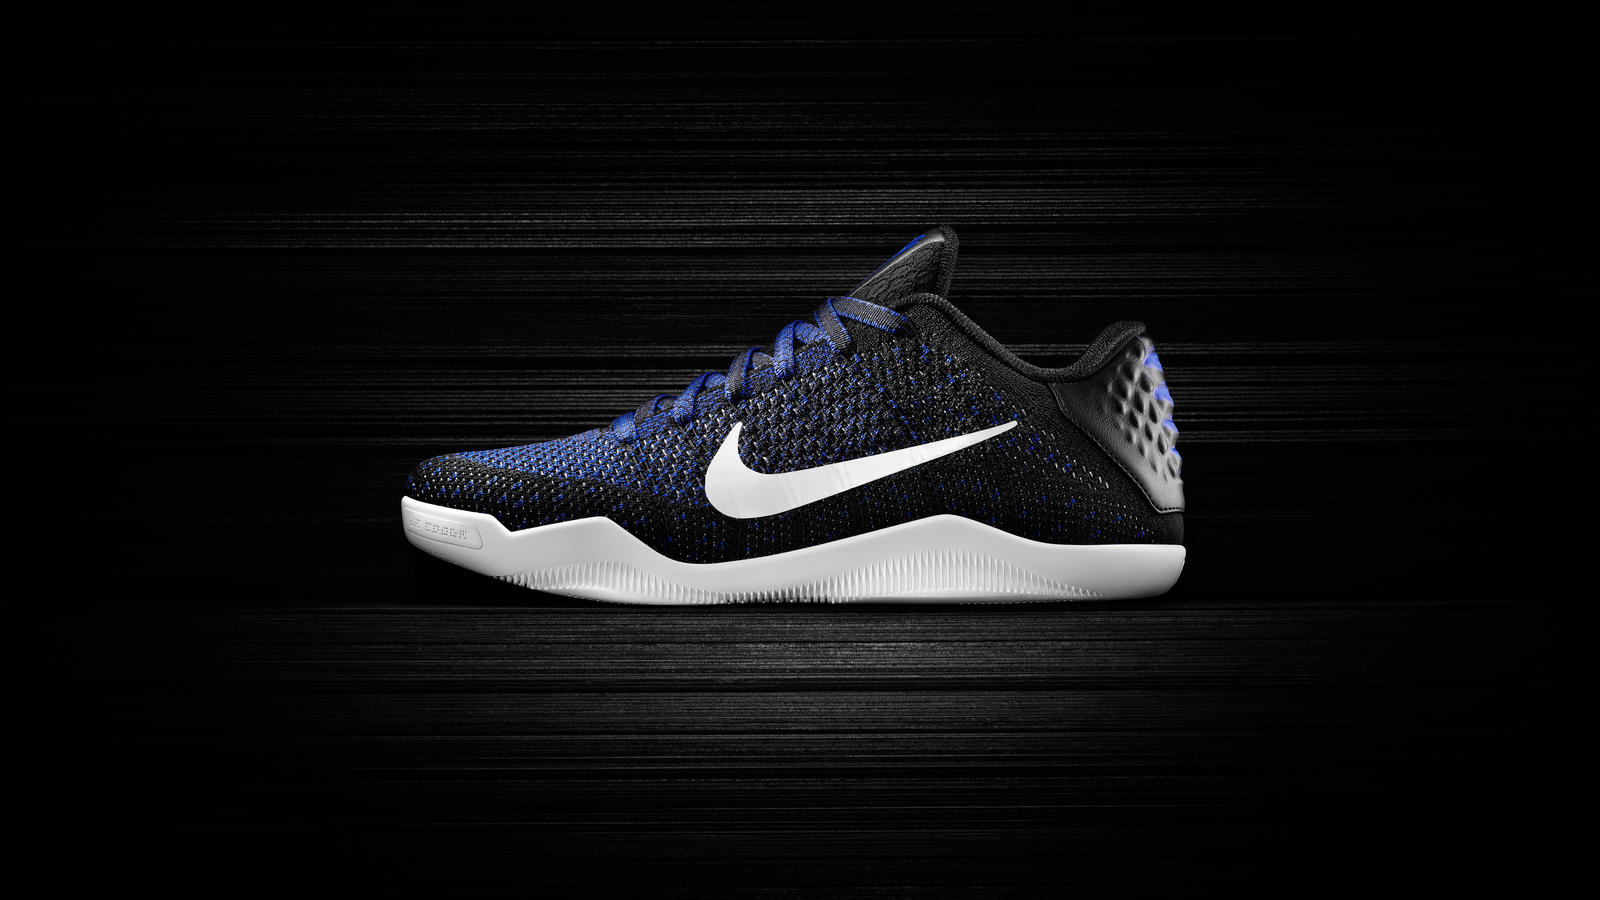 16 130 nike kobe 822675 014 profile 02 hd 1600